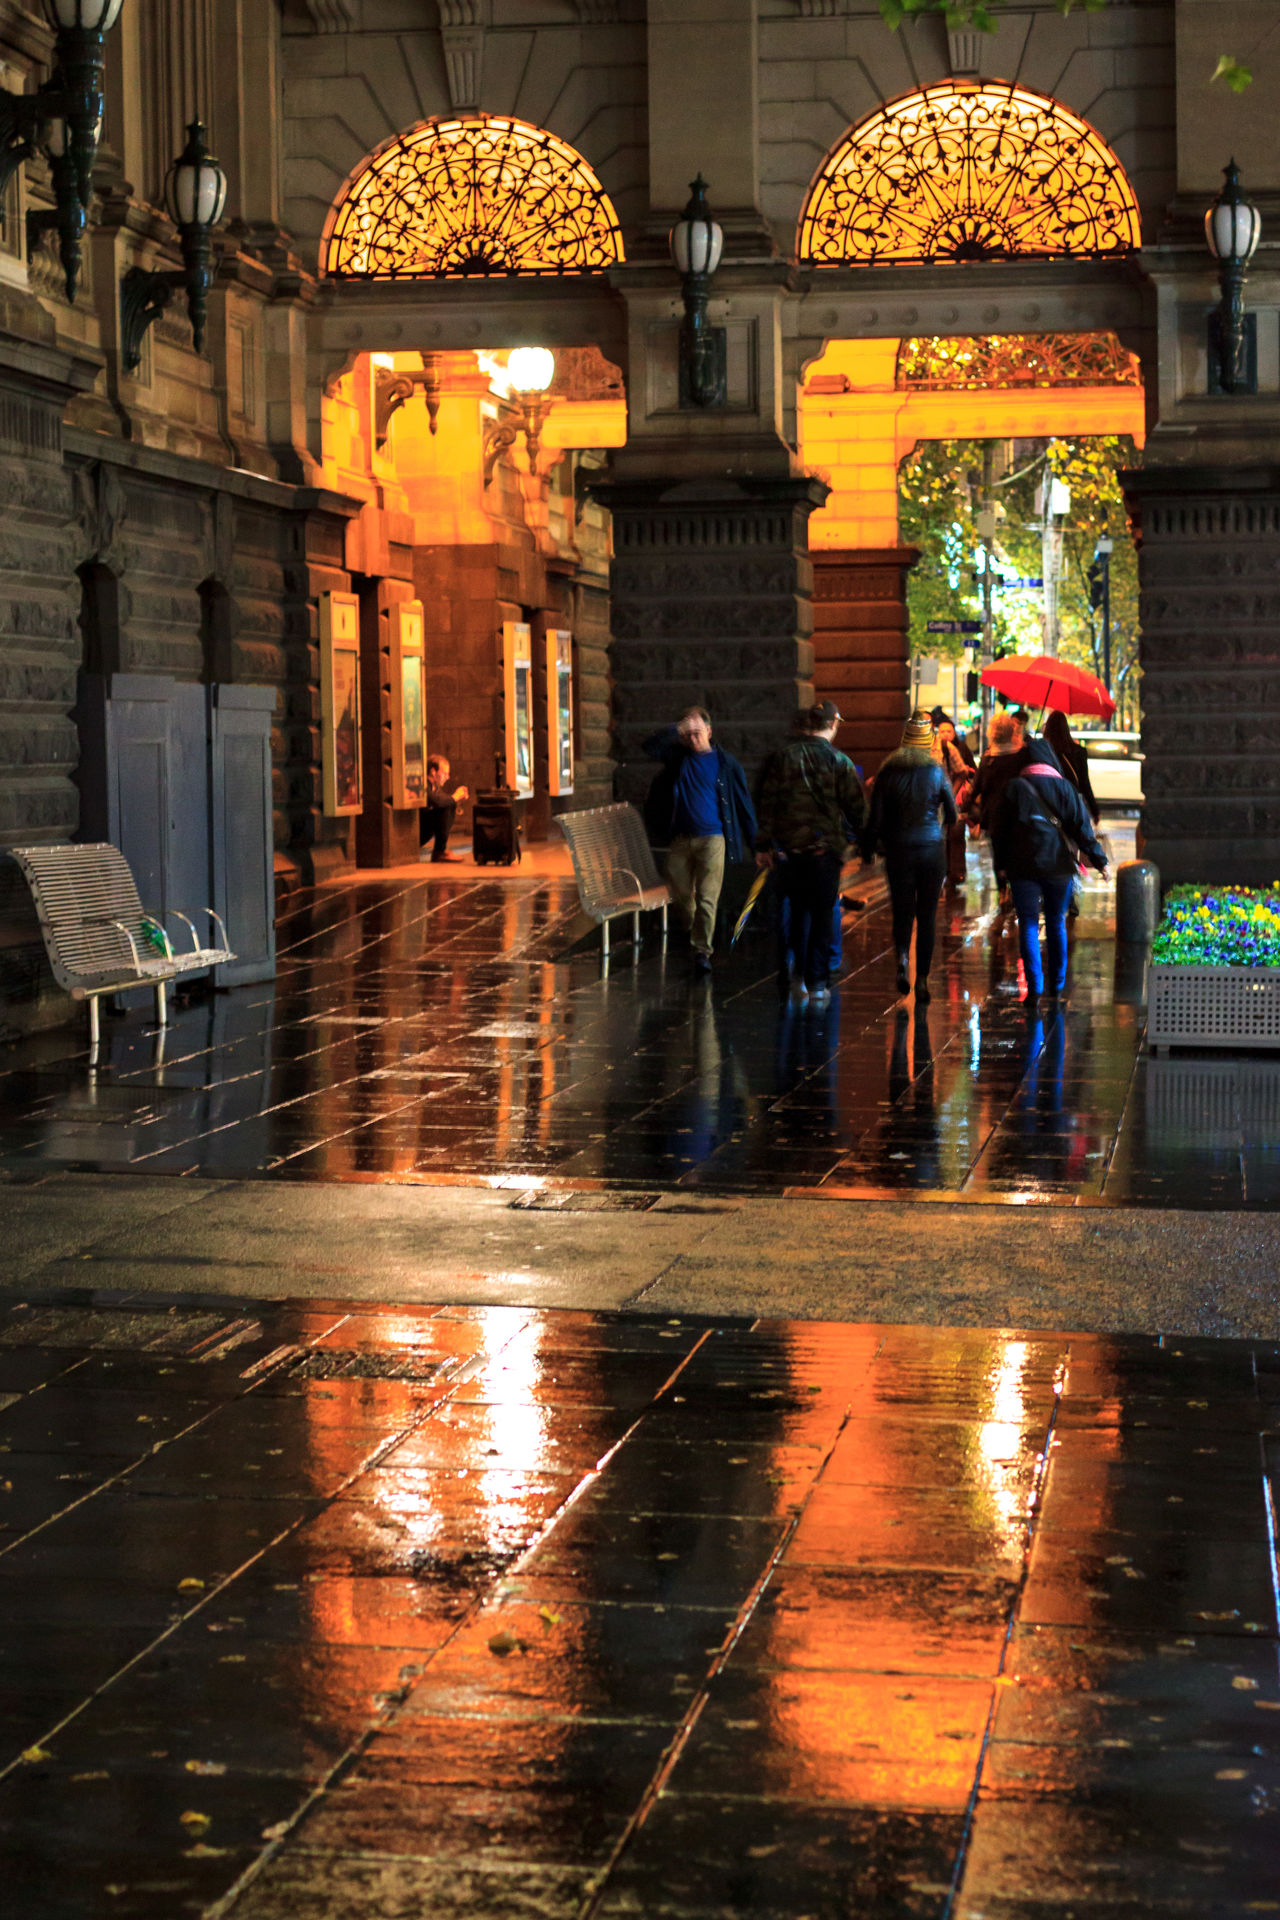 Town Hall on a cold, rainy night Architecture Building Exterior Built Structure City Full Length Illuminated Large Group Of People Lifestyles Men Night Outdoors People Rain Rainy Season Real People Reflection Under Water Weather Wet Women